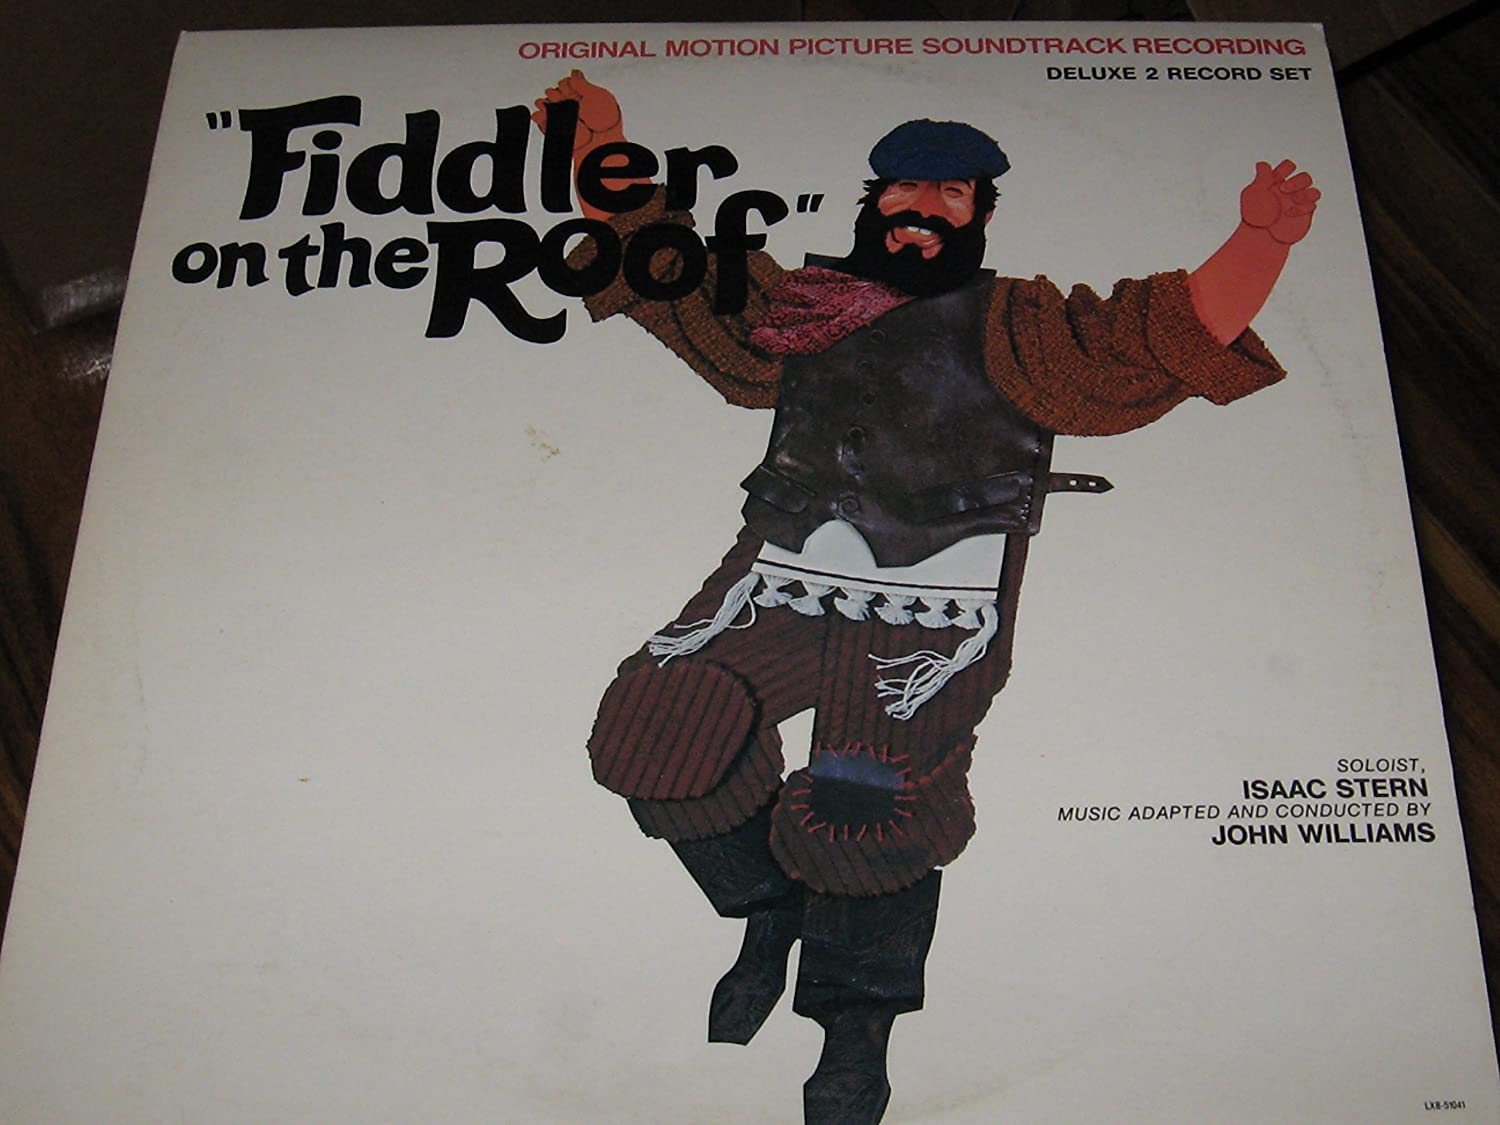 Fiddler In Under blast sales stock on the Roof Original Deluxe Record Soundtrack Set 2